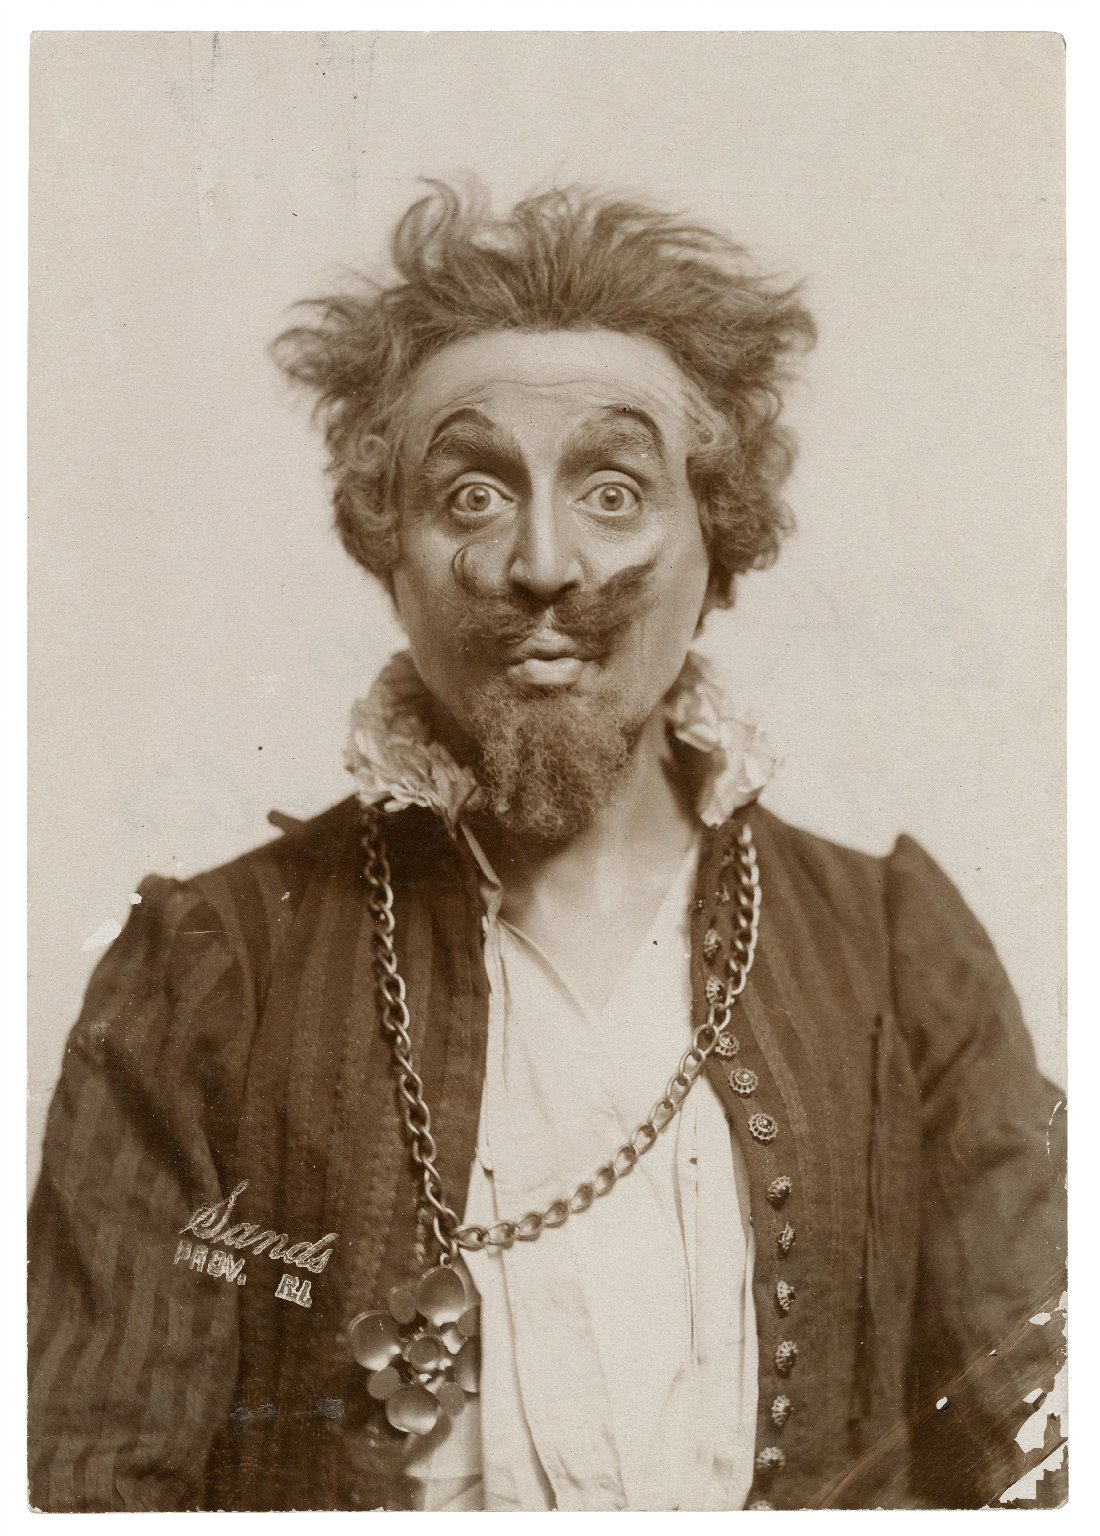 E.H. Sothern as Malvolio [in Shakespeare's Twelfth Night] [graphic] / Sands, Prov. R.I.